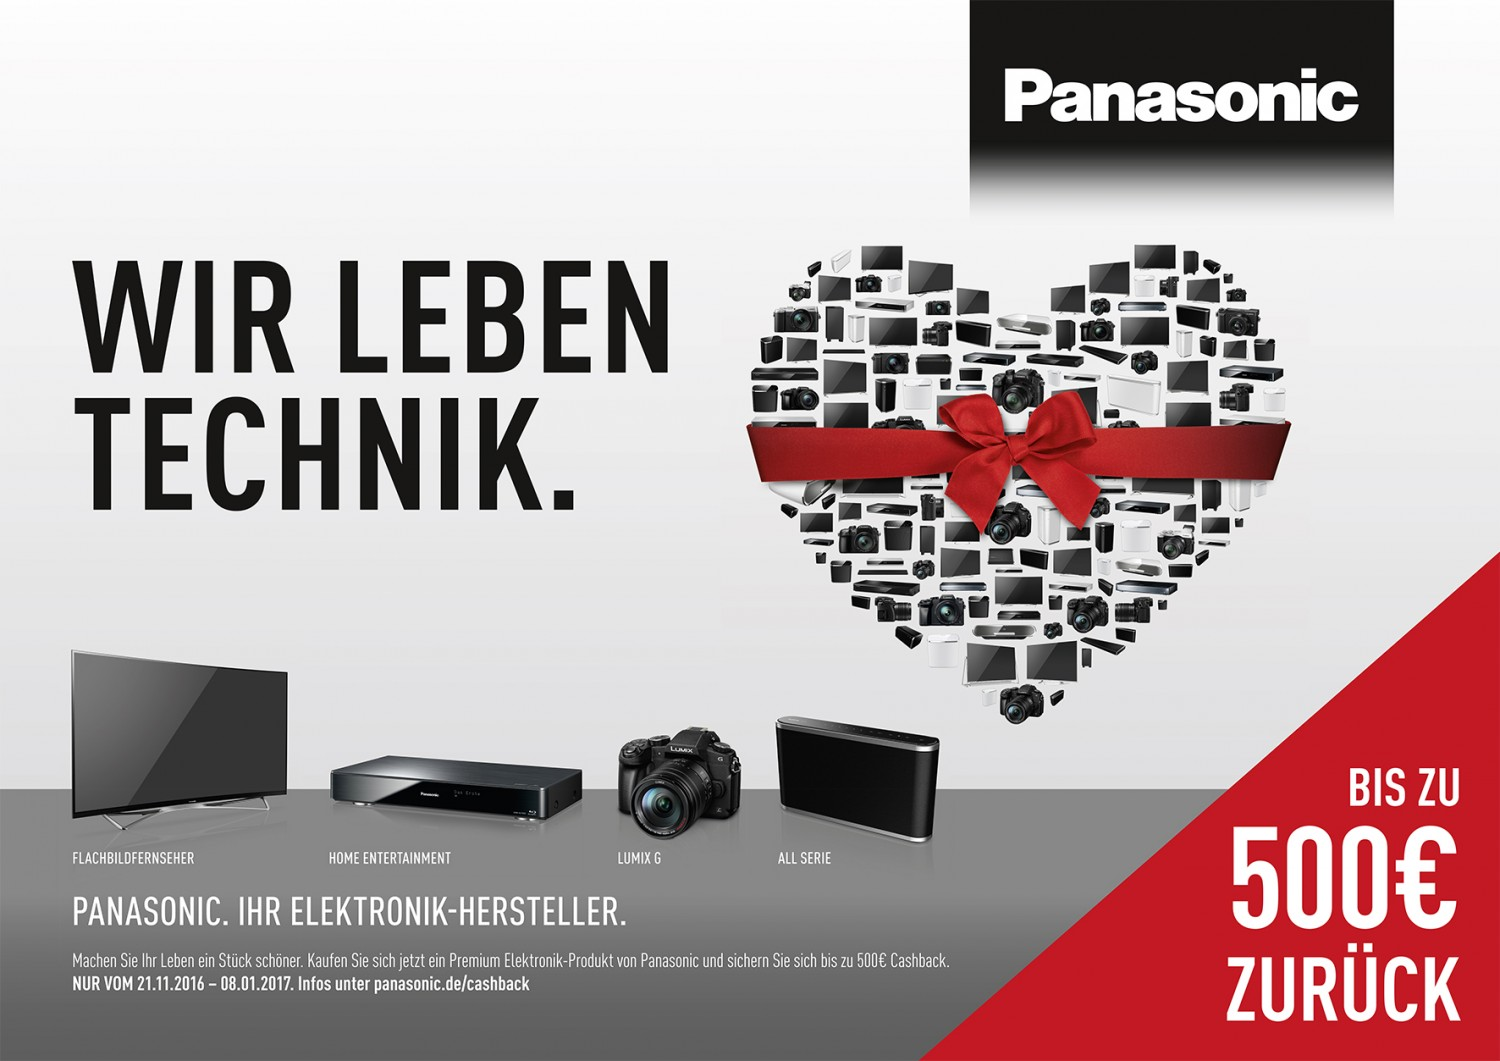 bis zu 500 euro zur ck cashback aktion bei panasonic f r. Black Bedroom Furniture Sets. Home Design Ideas